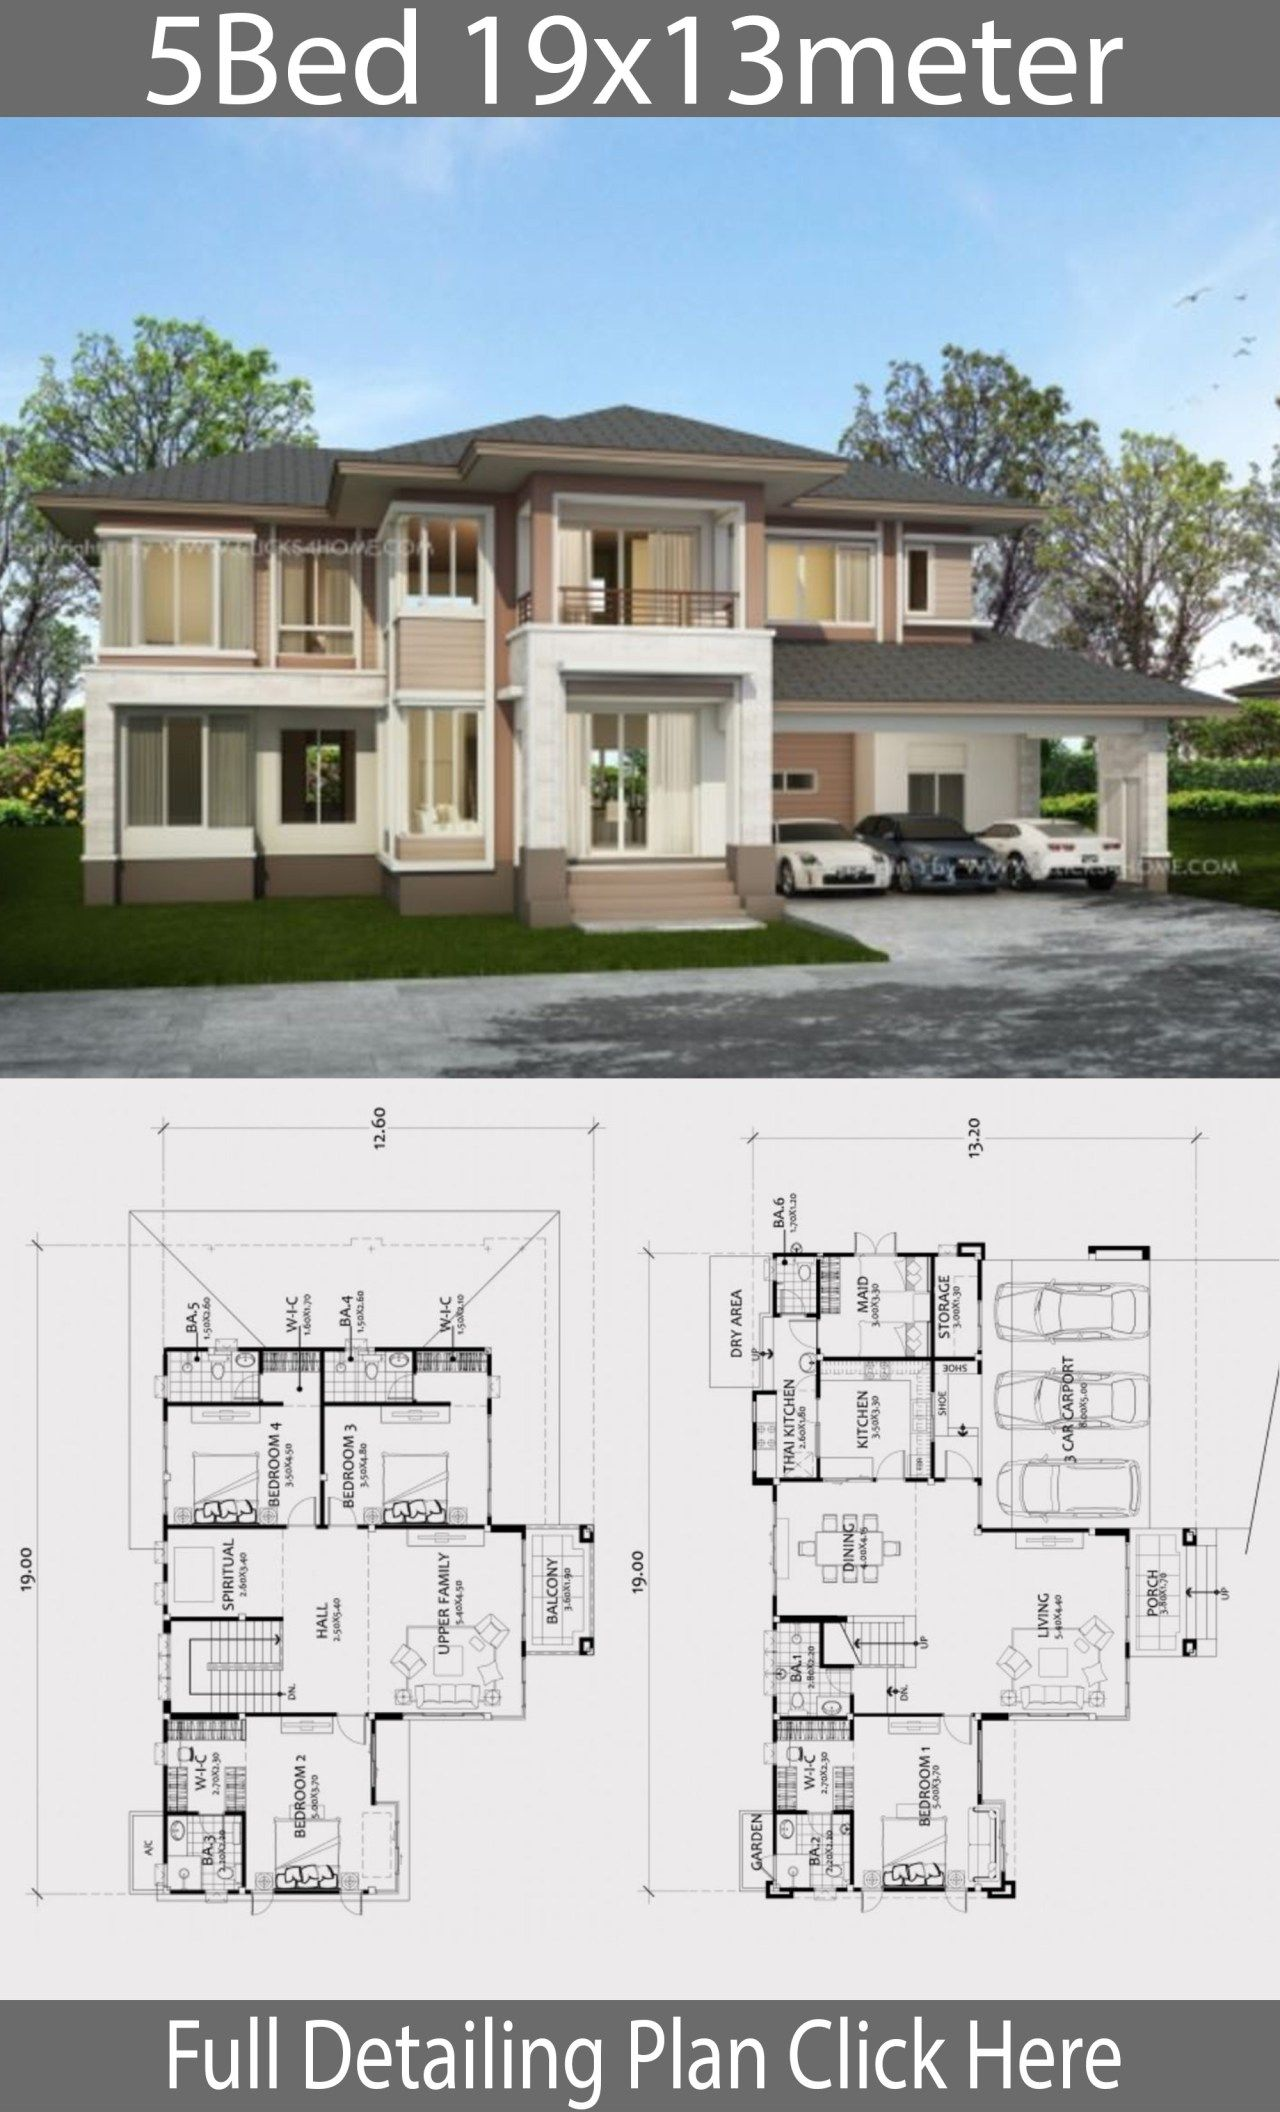 Home Design Plan 19x13m With 5 Bedrooms Home Ideas Bungalow House Plans Beautiful House Plans Home Design Plan